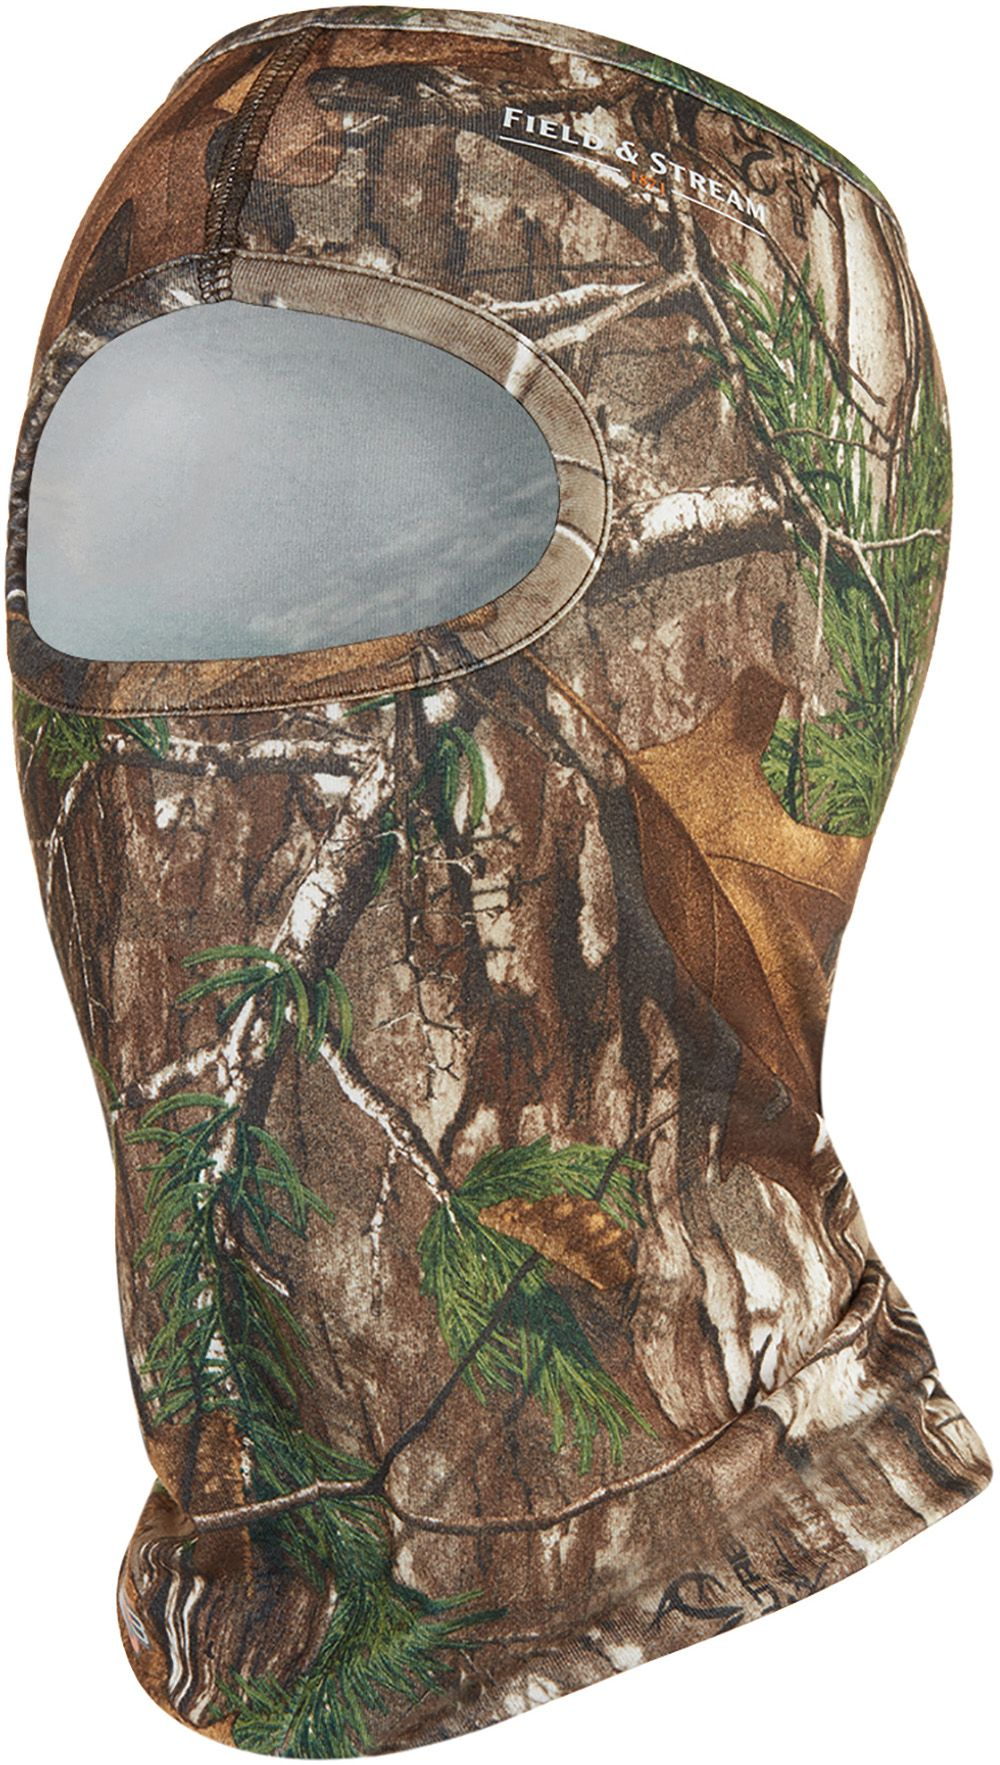 Field & Stream Men's Base Defense C3 3/4 Facemask, Brown thumbnail